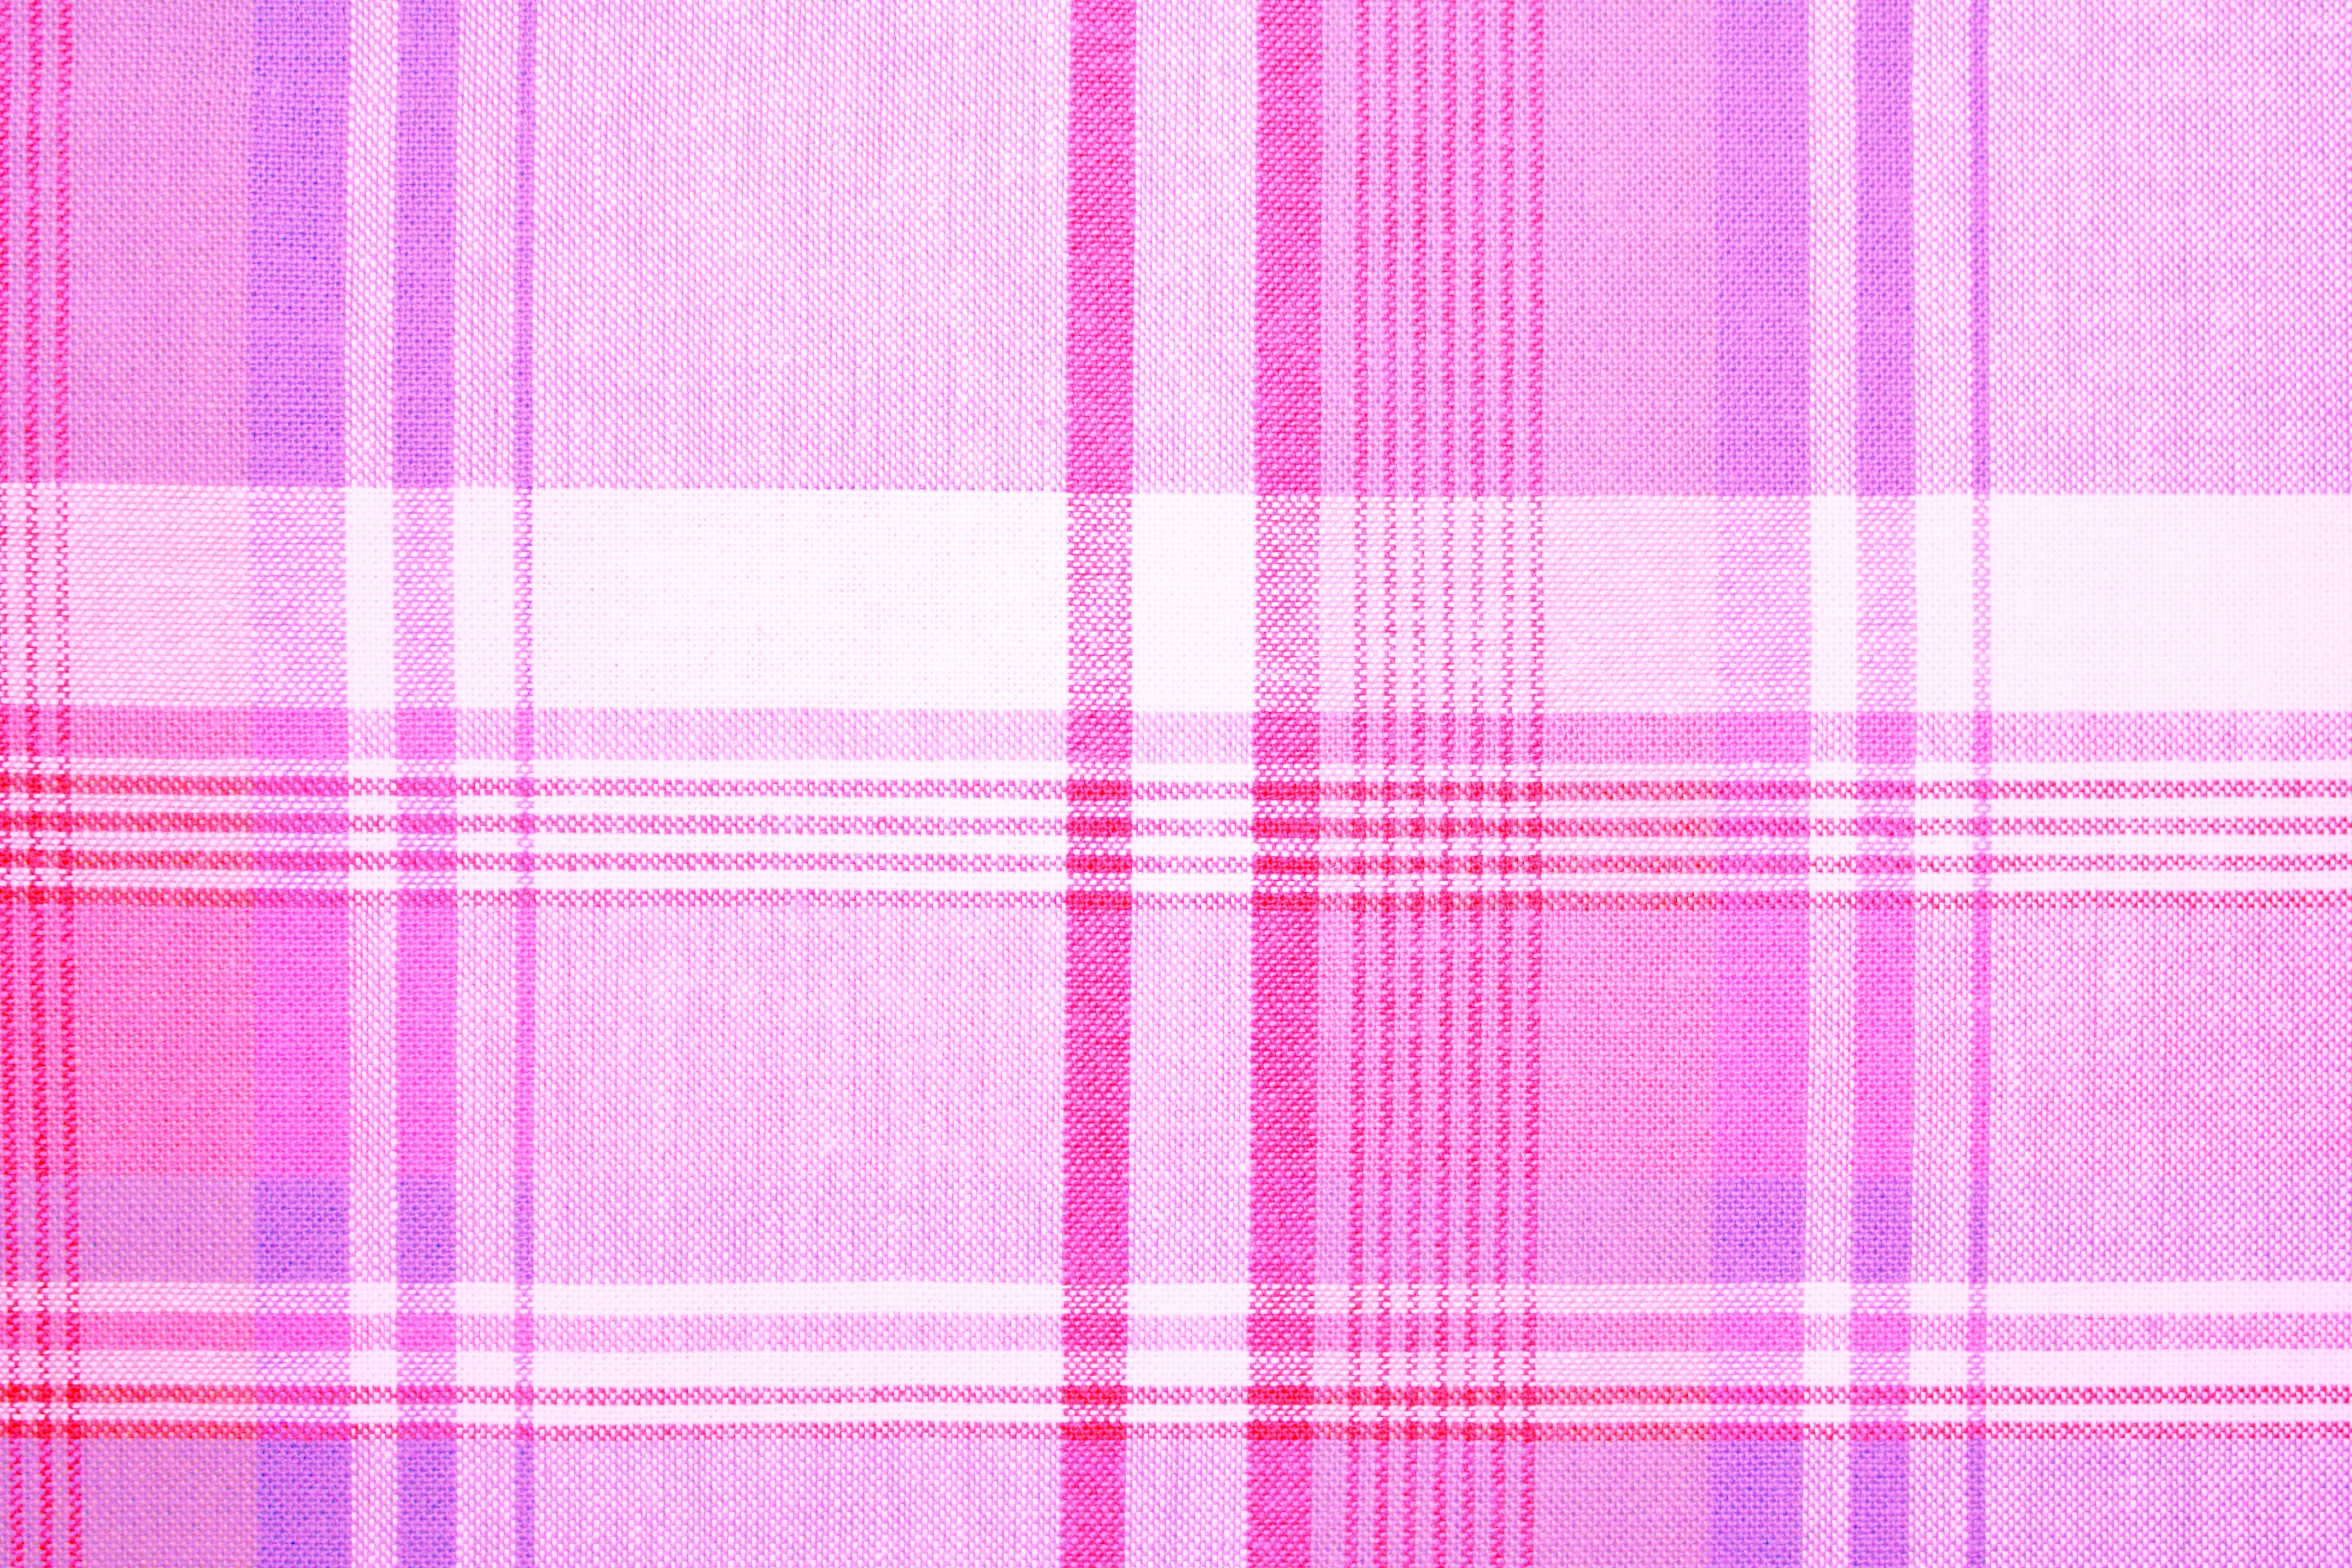 Pink fabric texture free high resolution photo dimensions 3888 - Pink And Purple Plaid Fabric Texture Free High Resolution Photo Dimensions 3888 2592 Click Here To Download Full Resolution Image